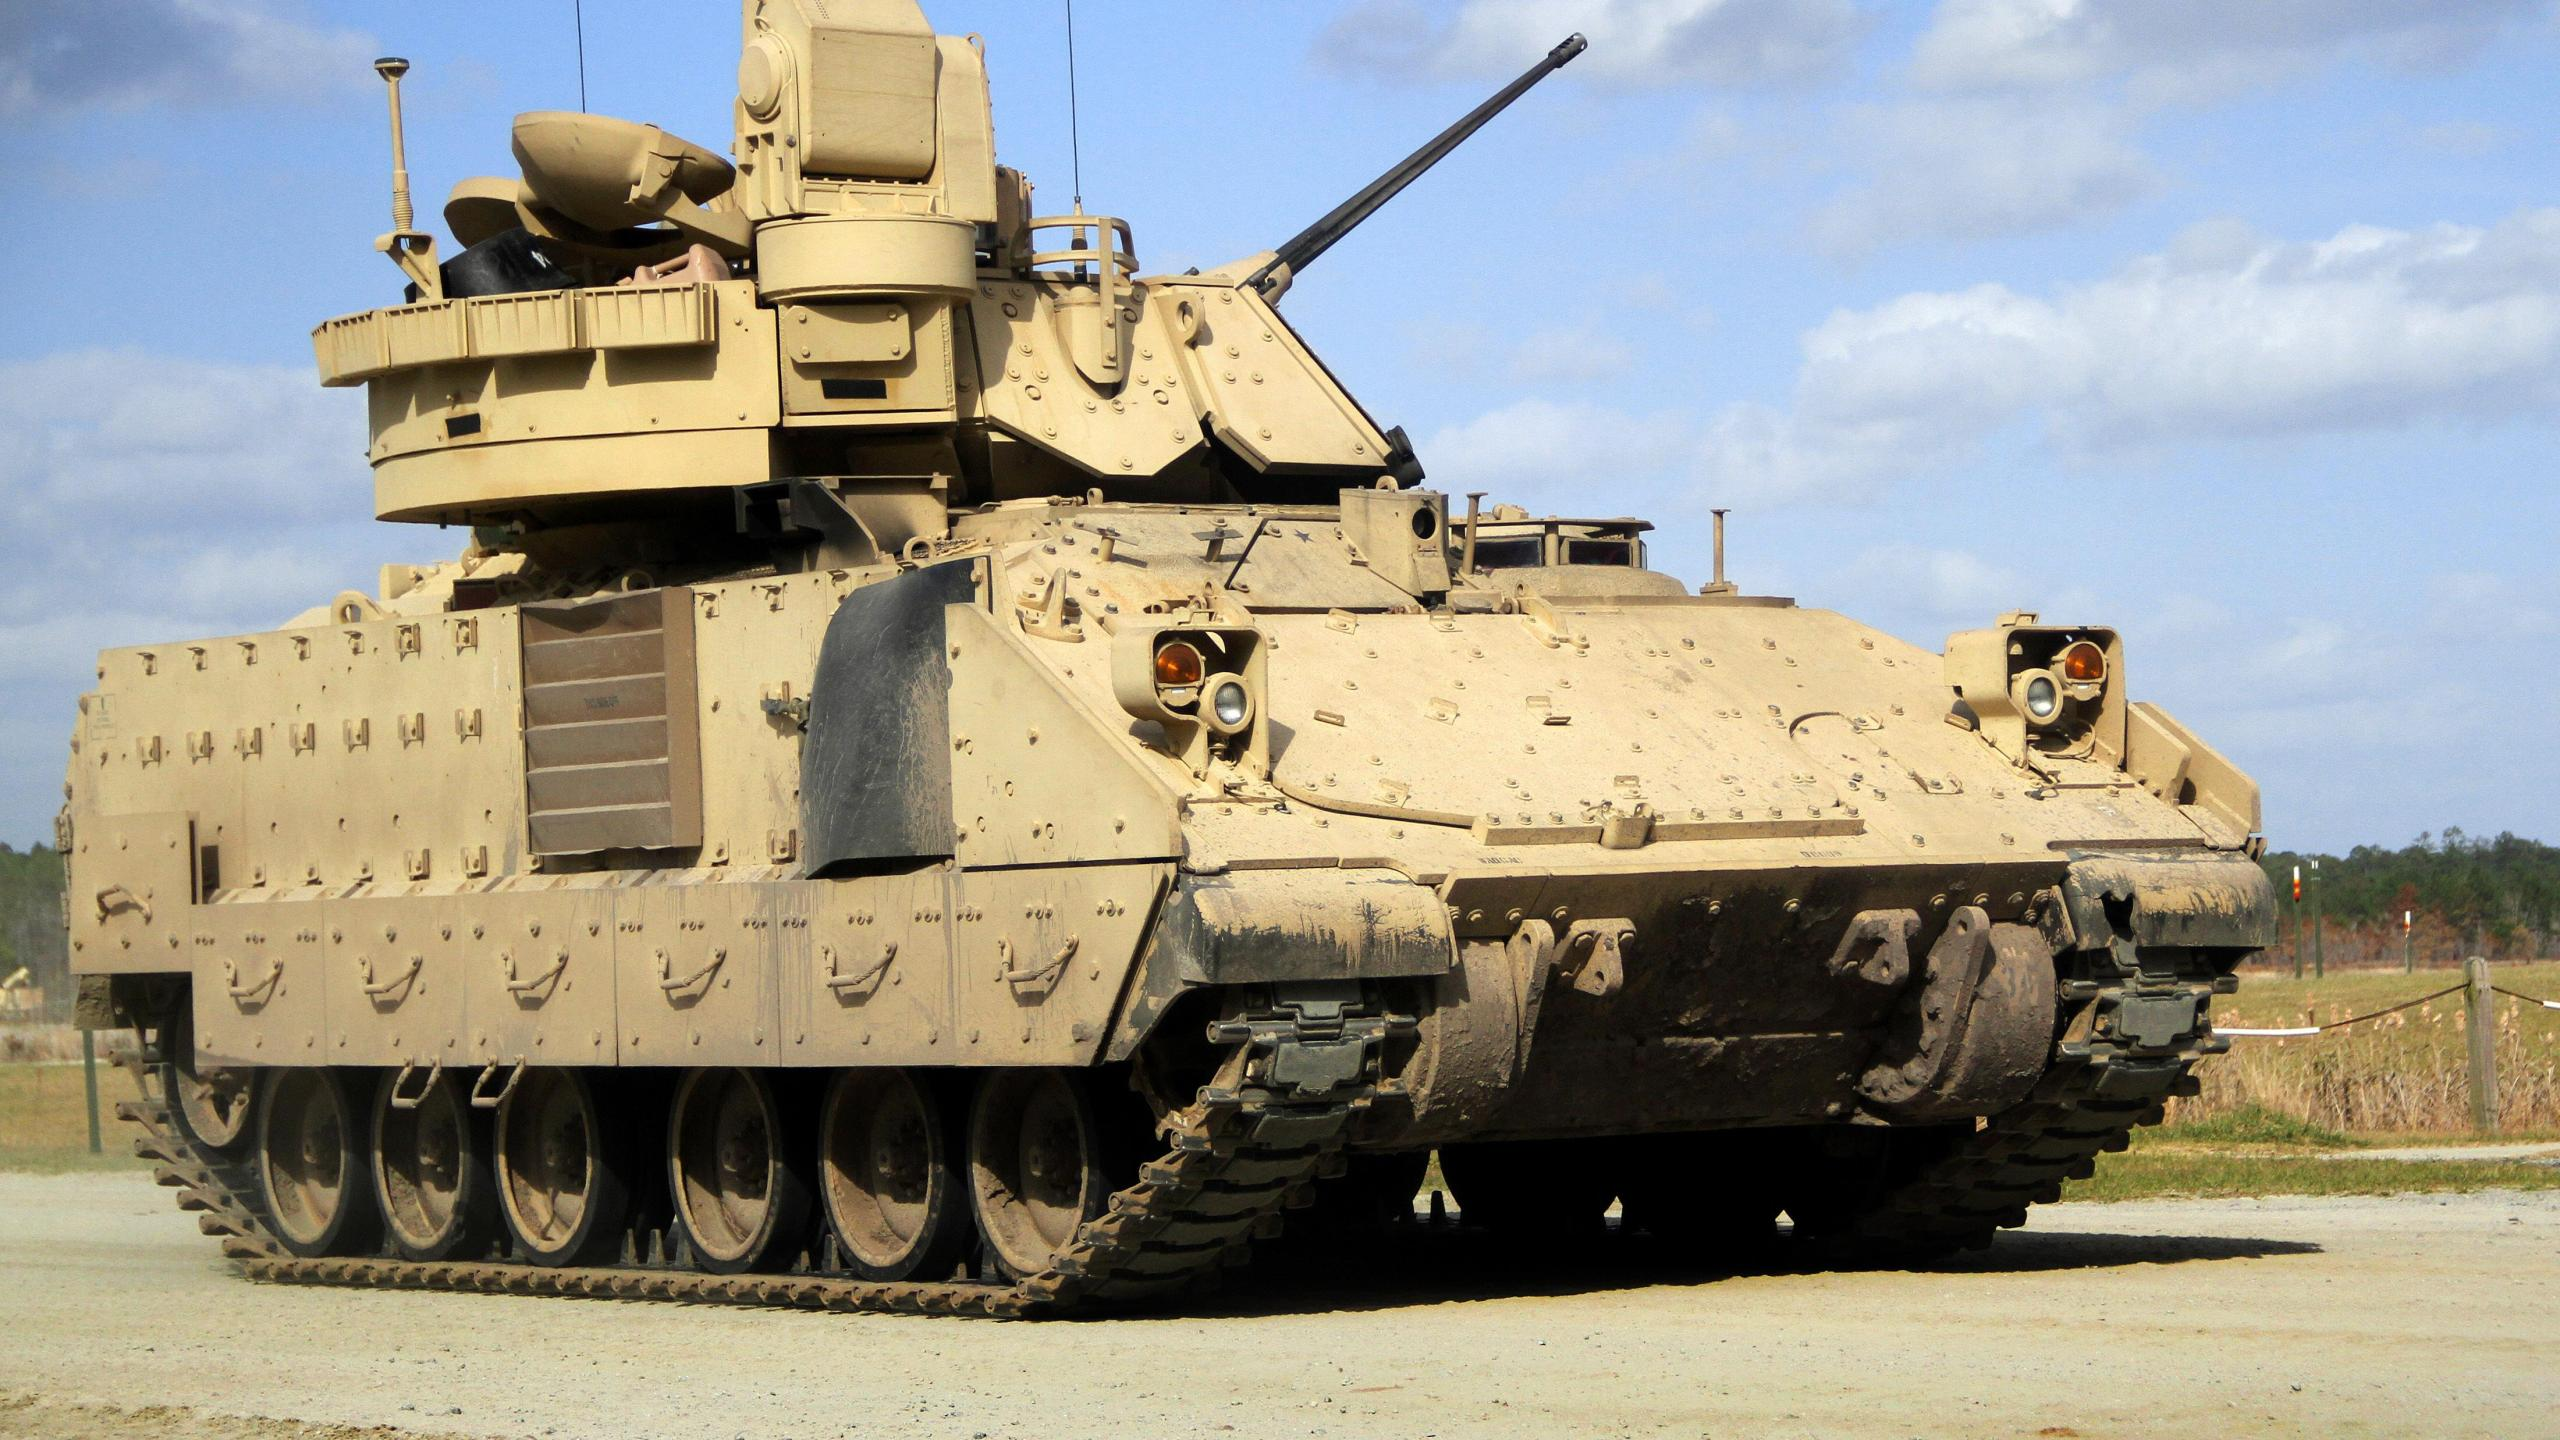 An M3A3 Bradley fighting vehicle is seen during a live-fire training exercise at Fort Stewart, Georgia, on March 10, 2016. (Credit: Pfc. Payton Wilson/ U.S. Department of Defense)